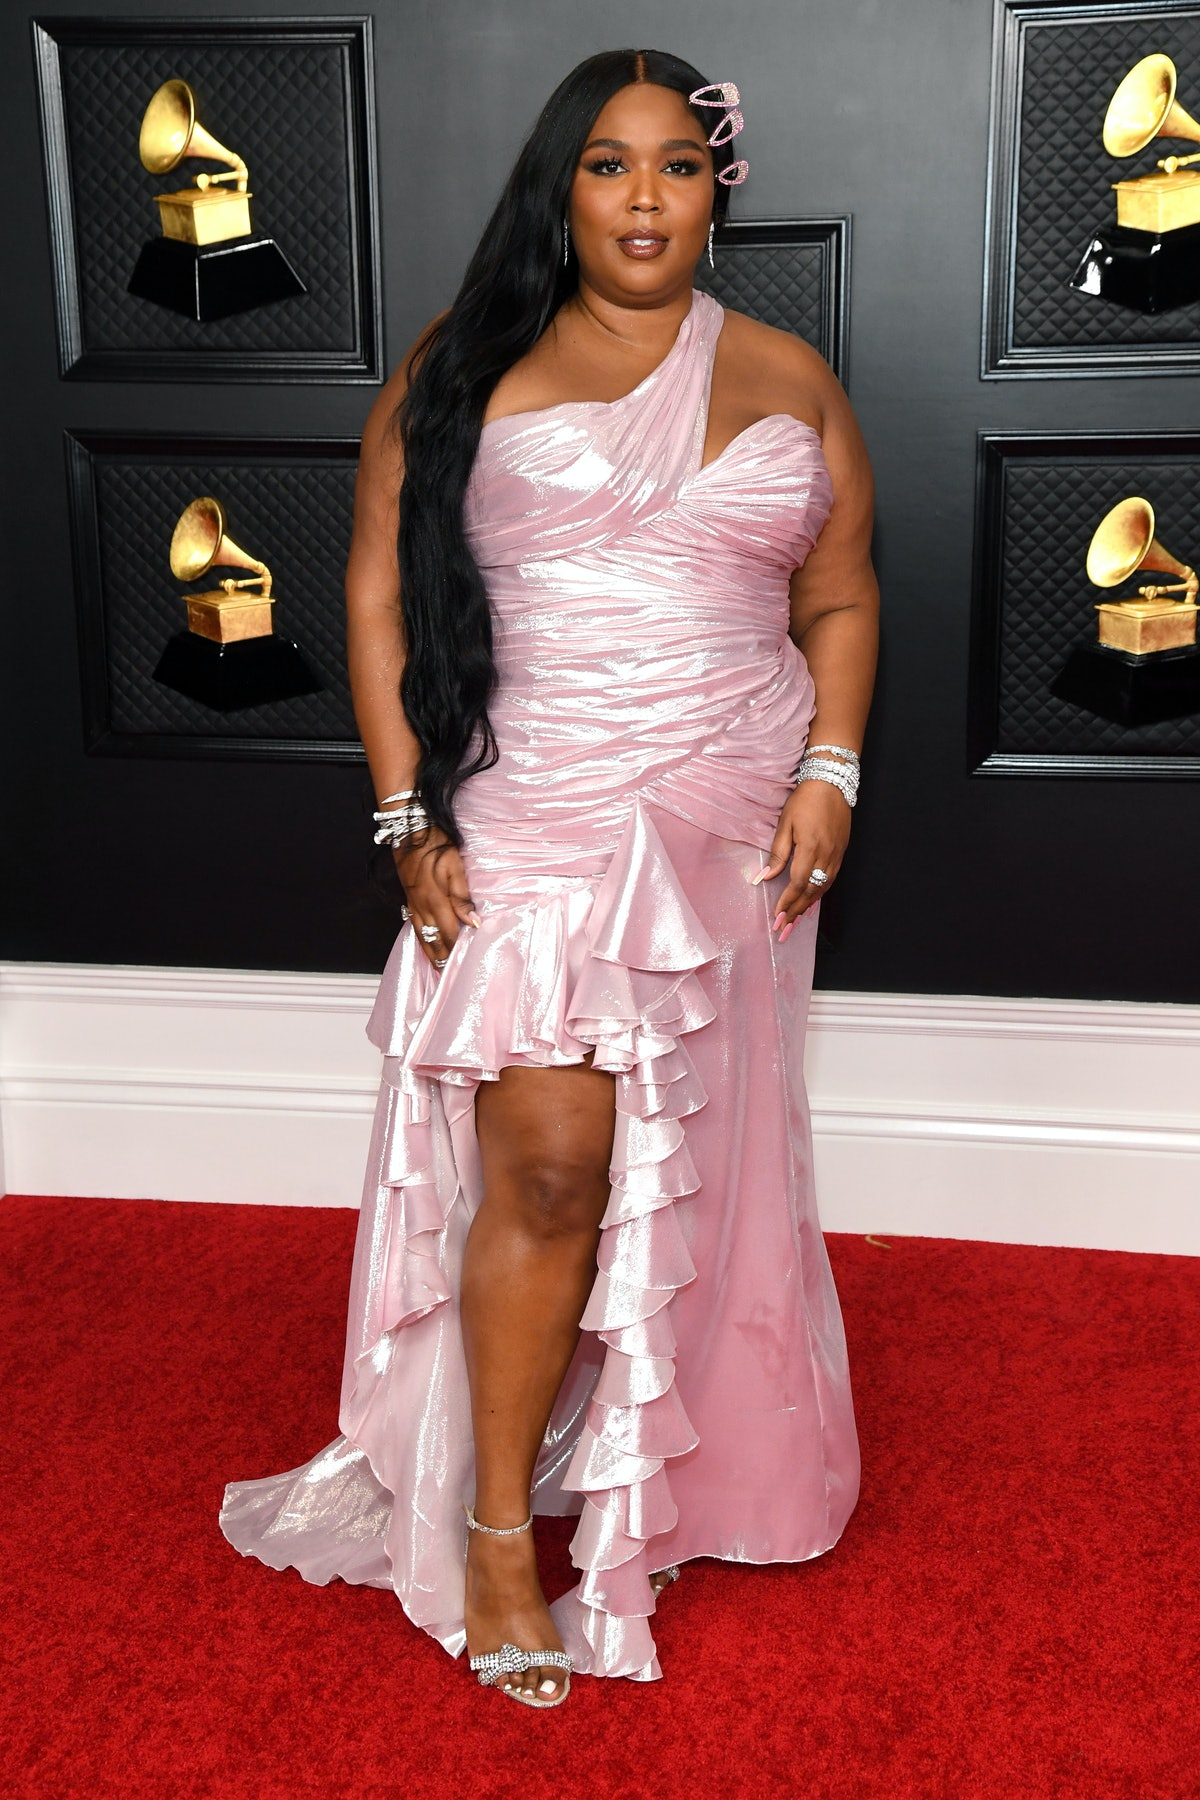 Lizzo in pink red carpet gown.